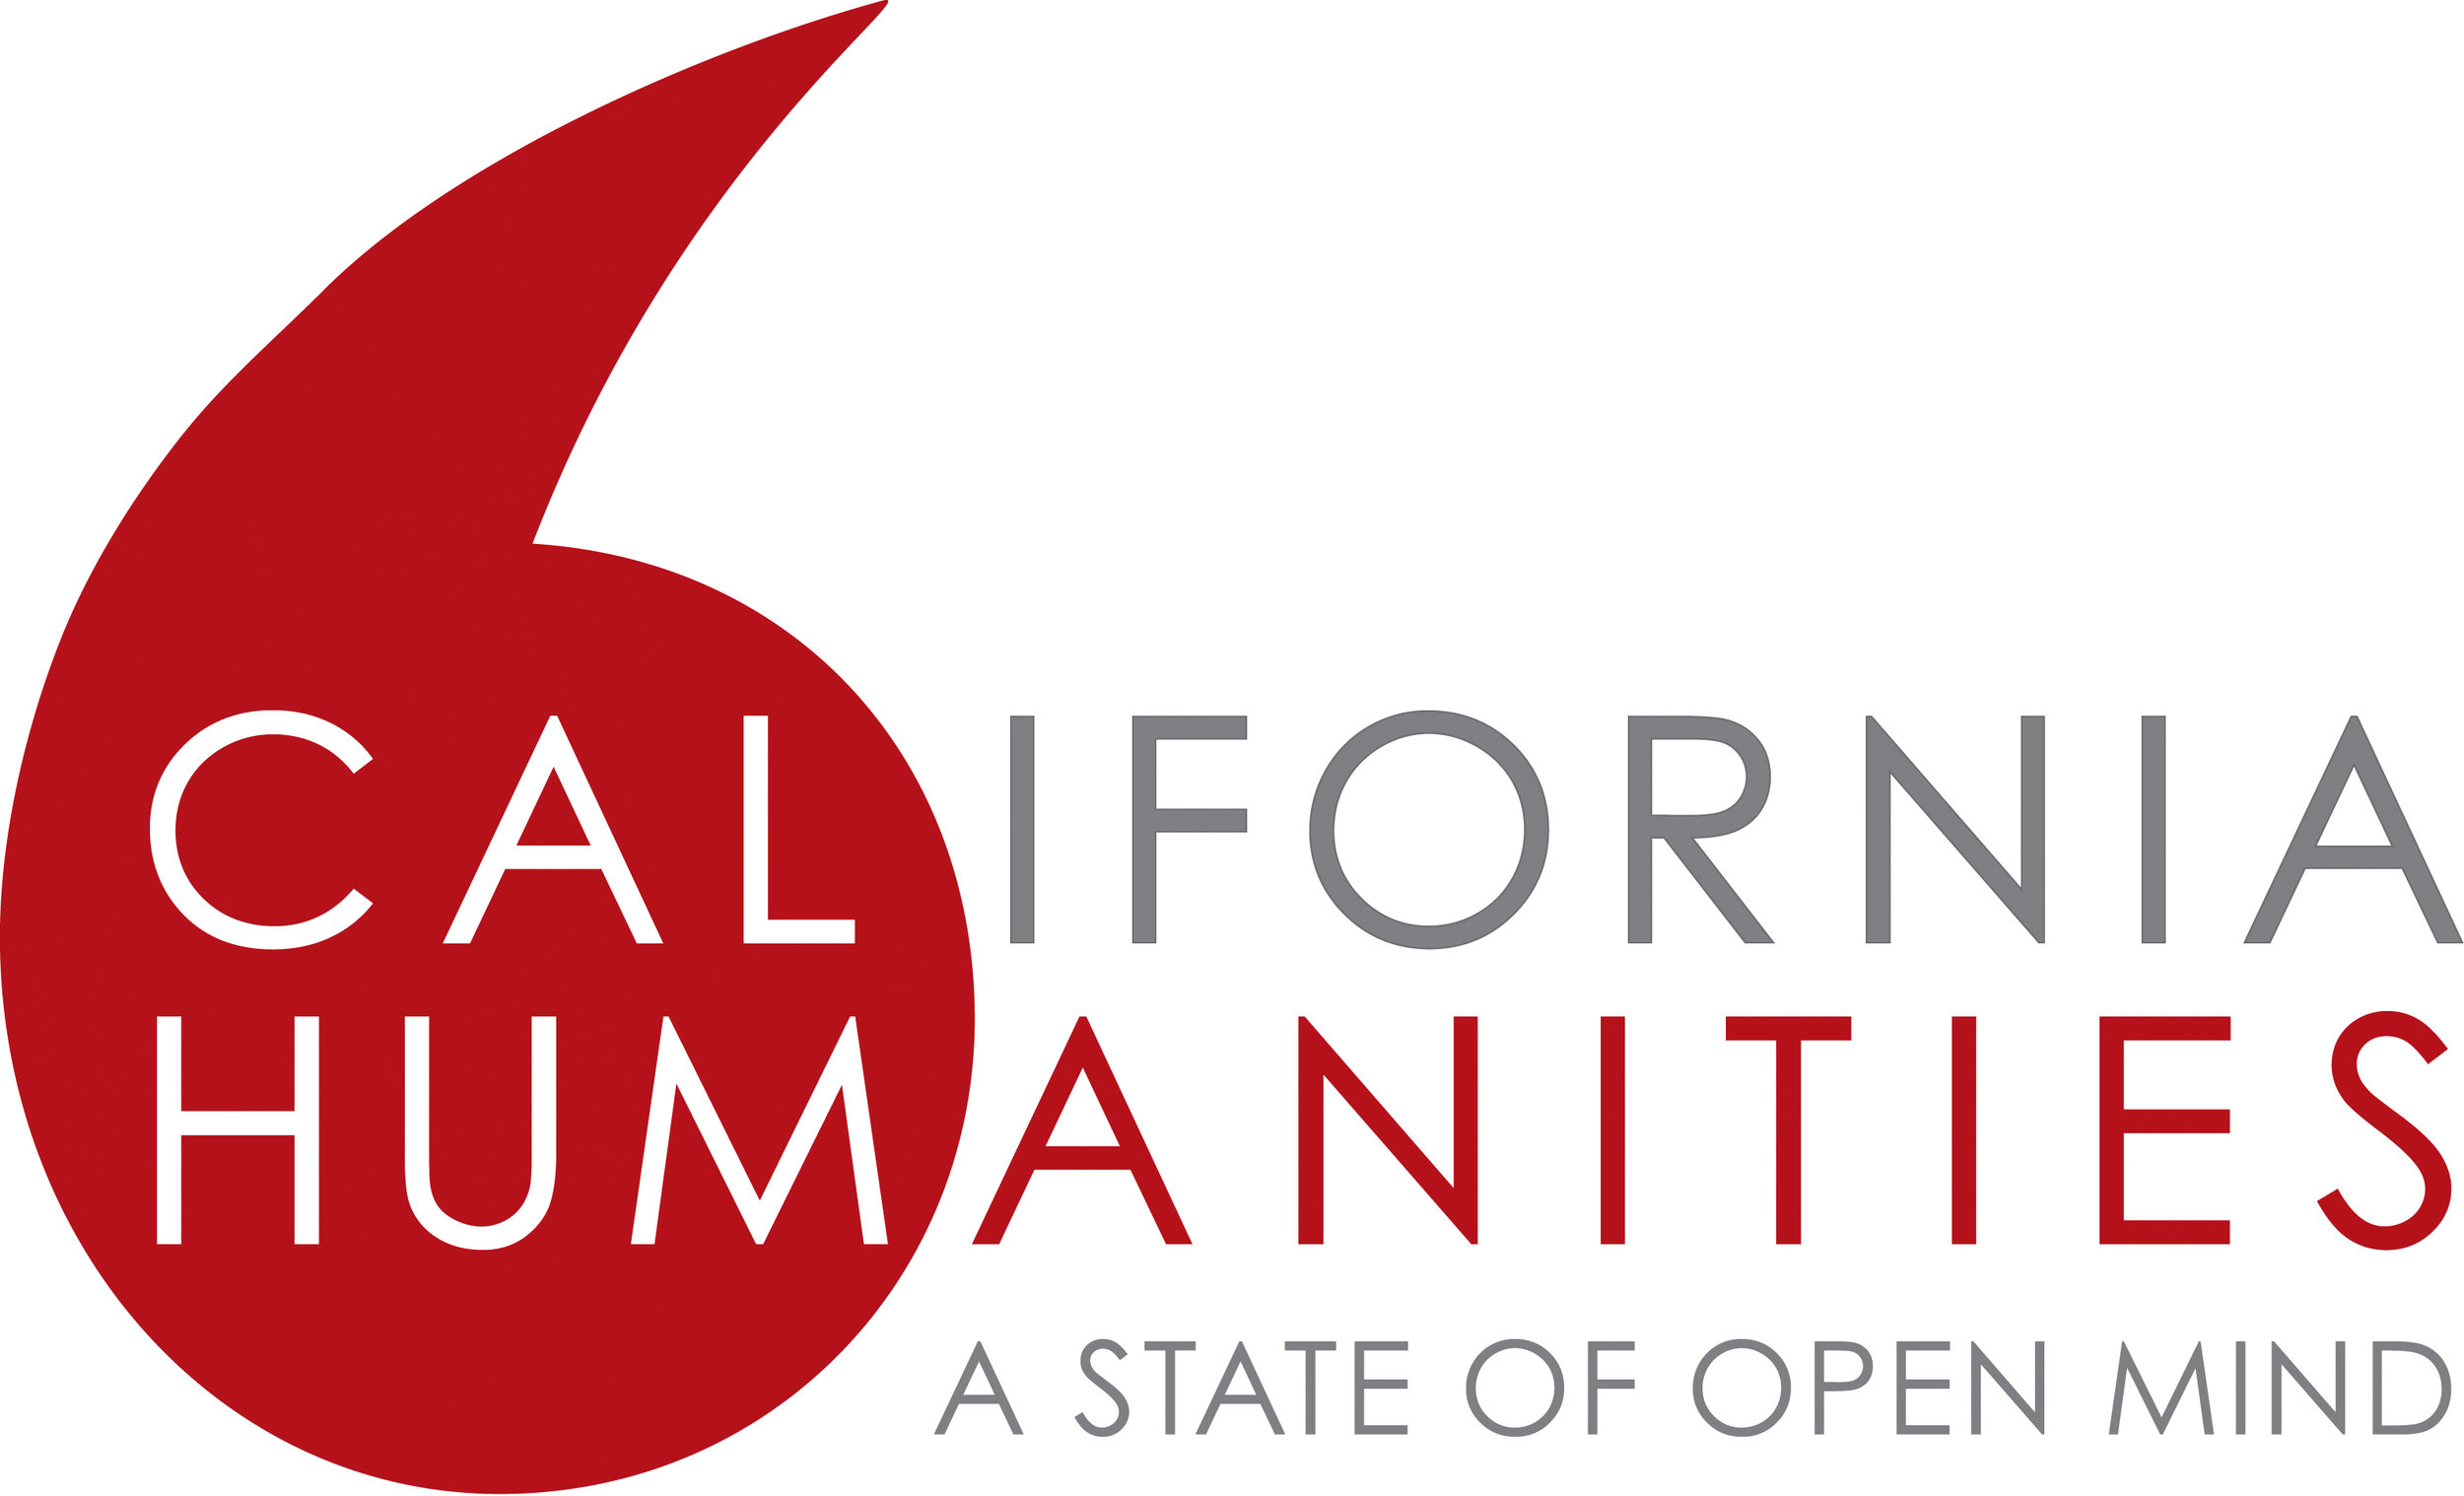 - This project was made possible with support from California Humanities, a non-profit partner of the National Endowment for the Humanities.Visit www.calhum.org.